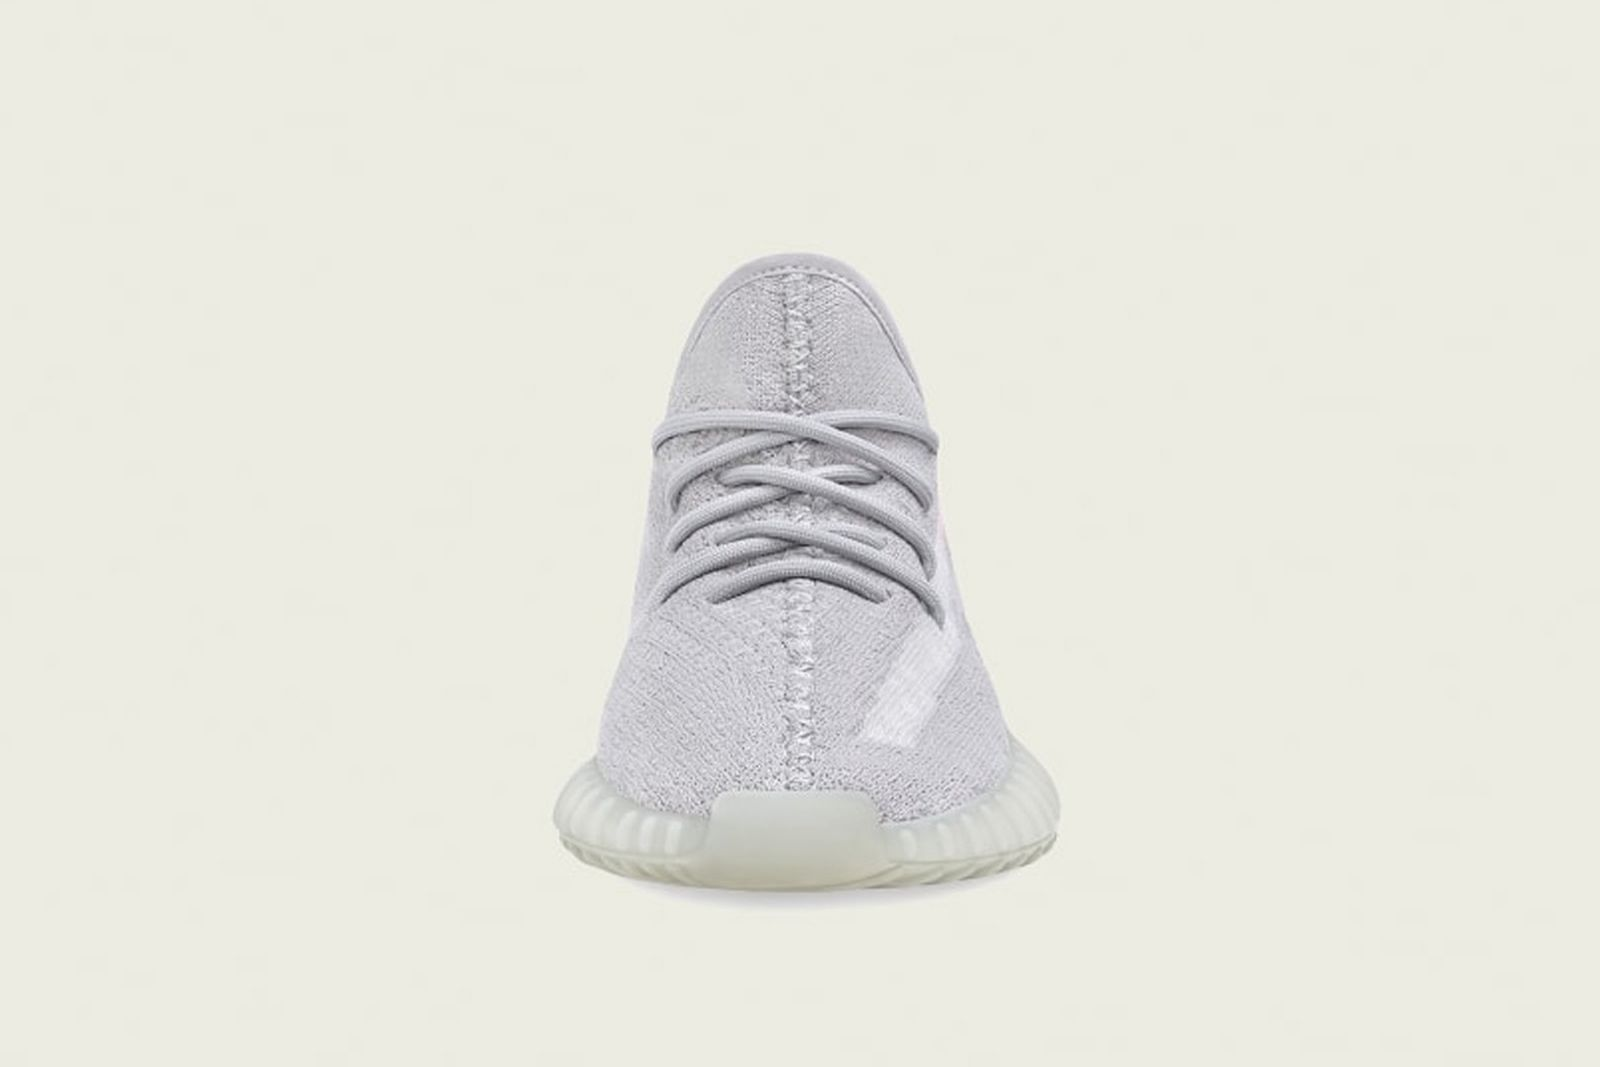 adidas-yeezy-boost-350-v2-taillight-release-date-price-02